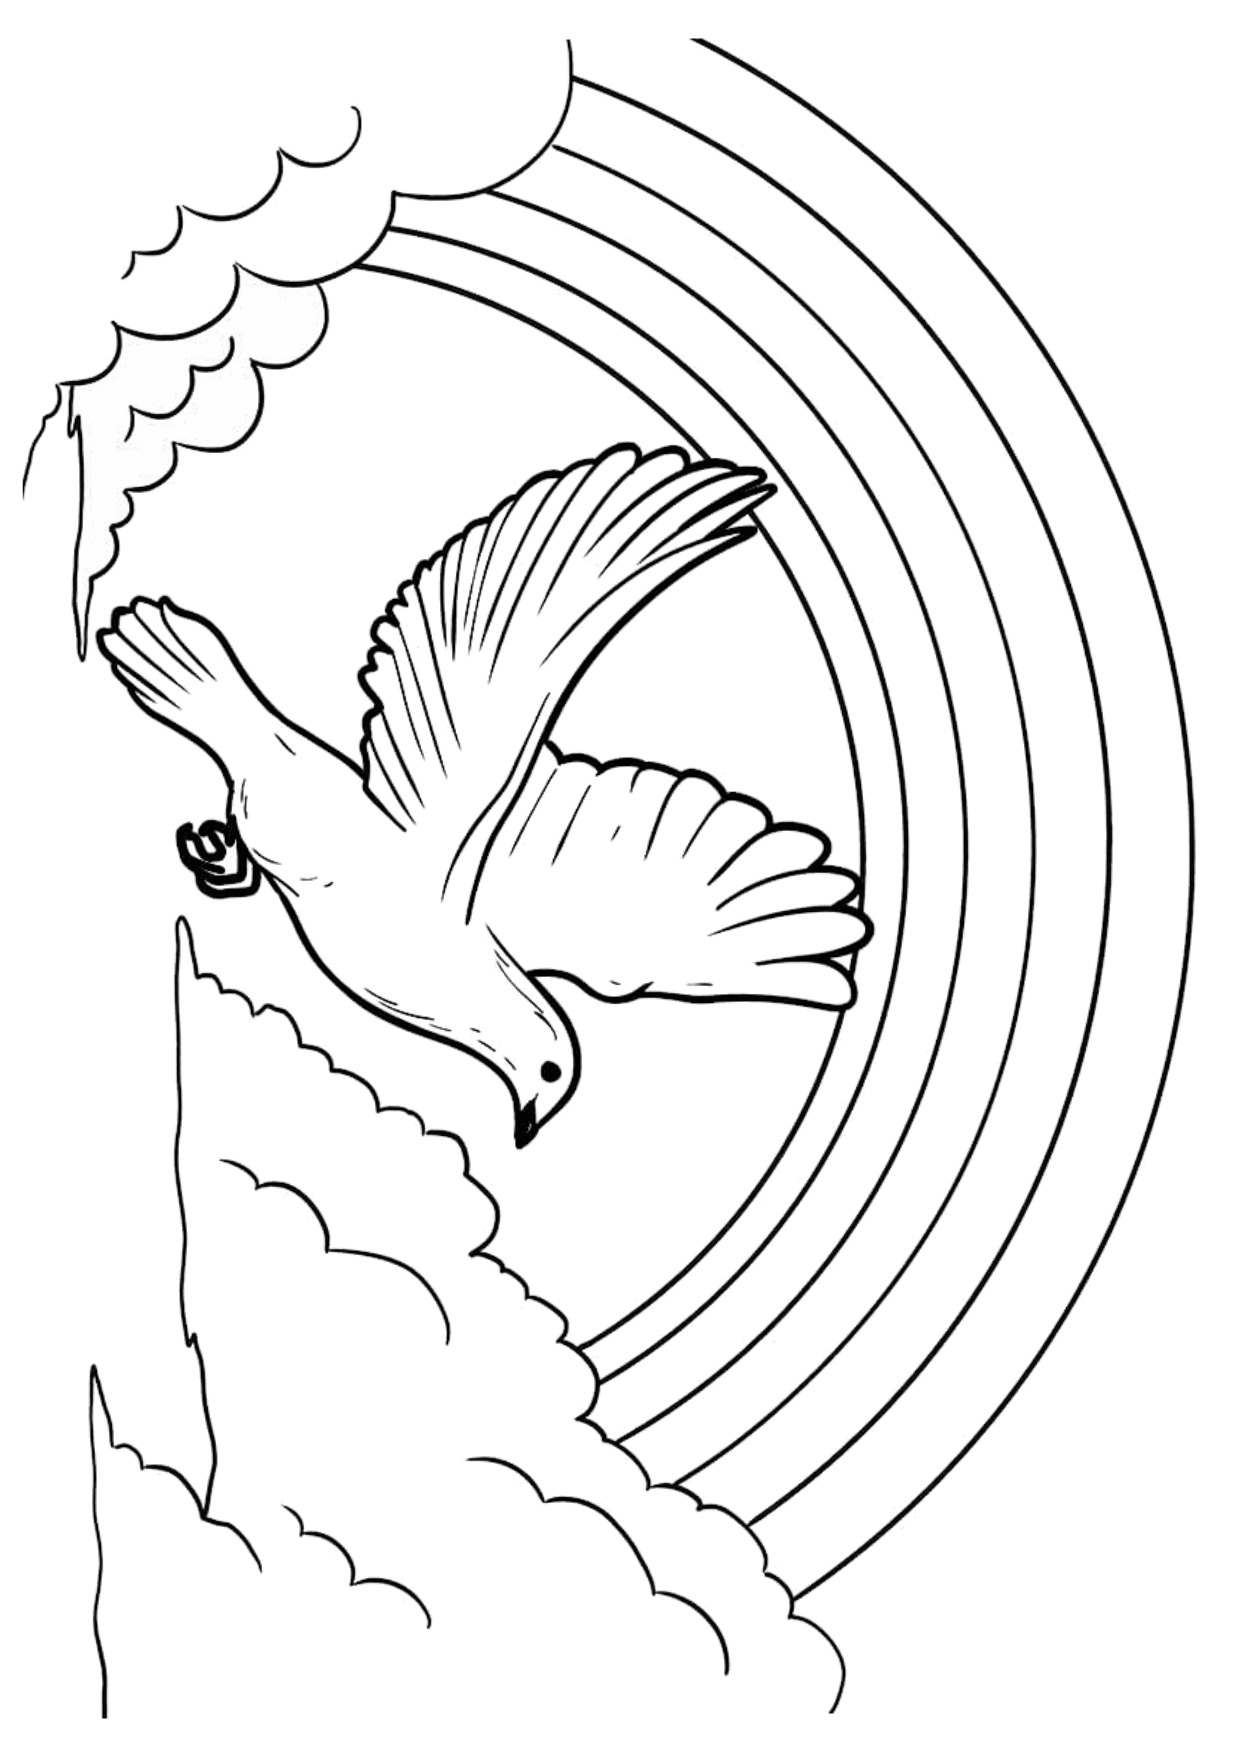 White Dove Flying And Rainbow Coloring Page Bubakids Com Dove Flying Coloring Pages Animal Coloring Pages